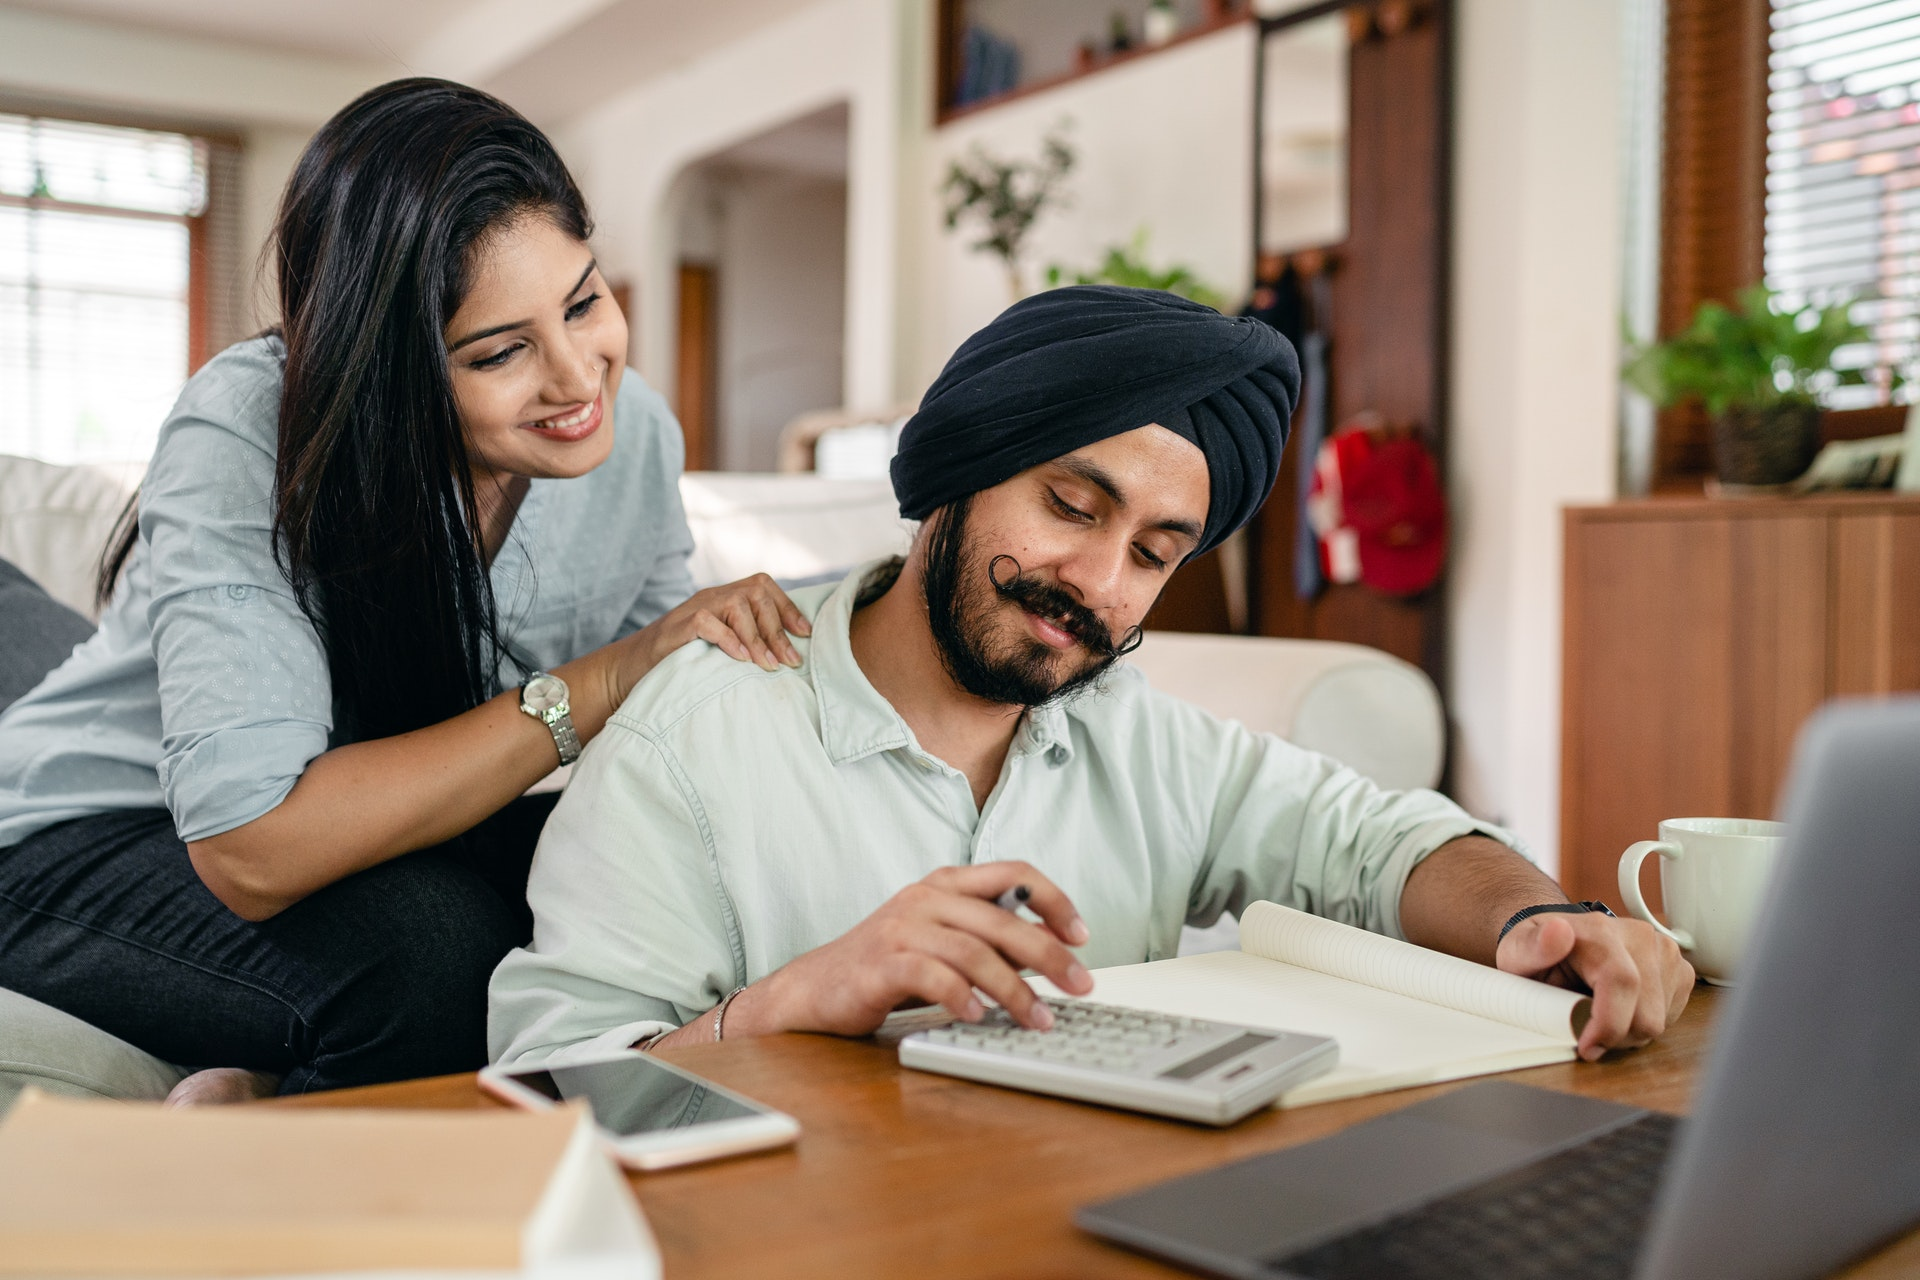 Man with turban and woman working with calculator and notebook